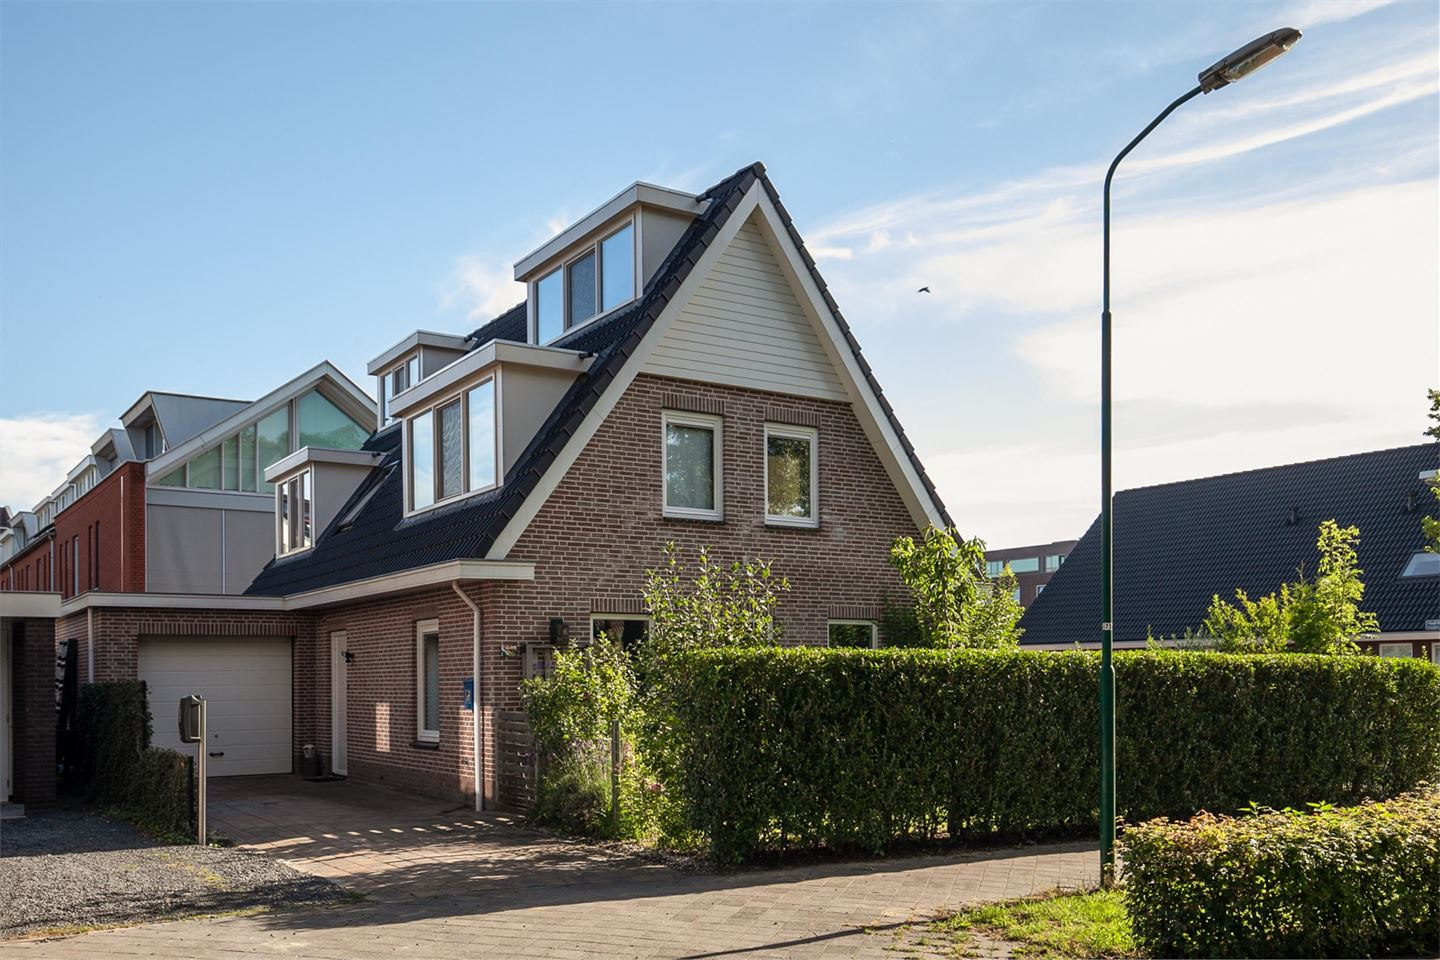 View photo 1 of Utrechtseweg 20 a